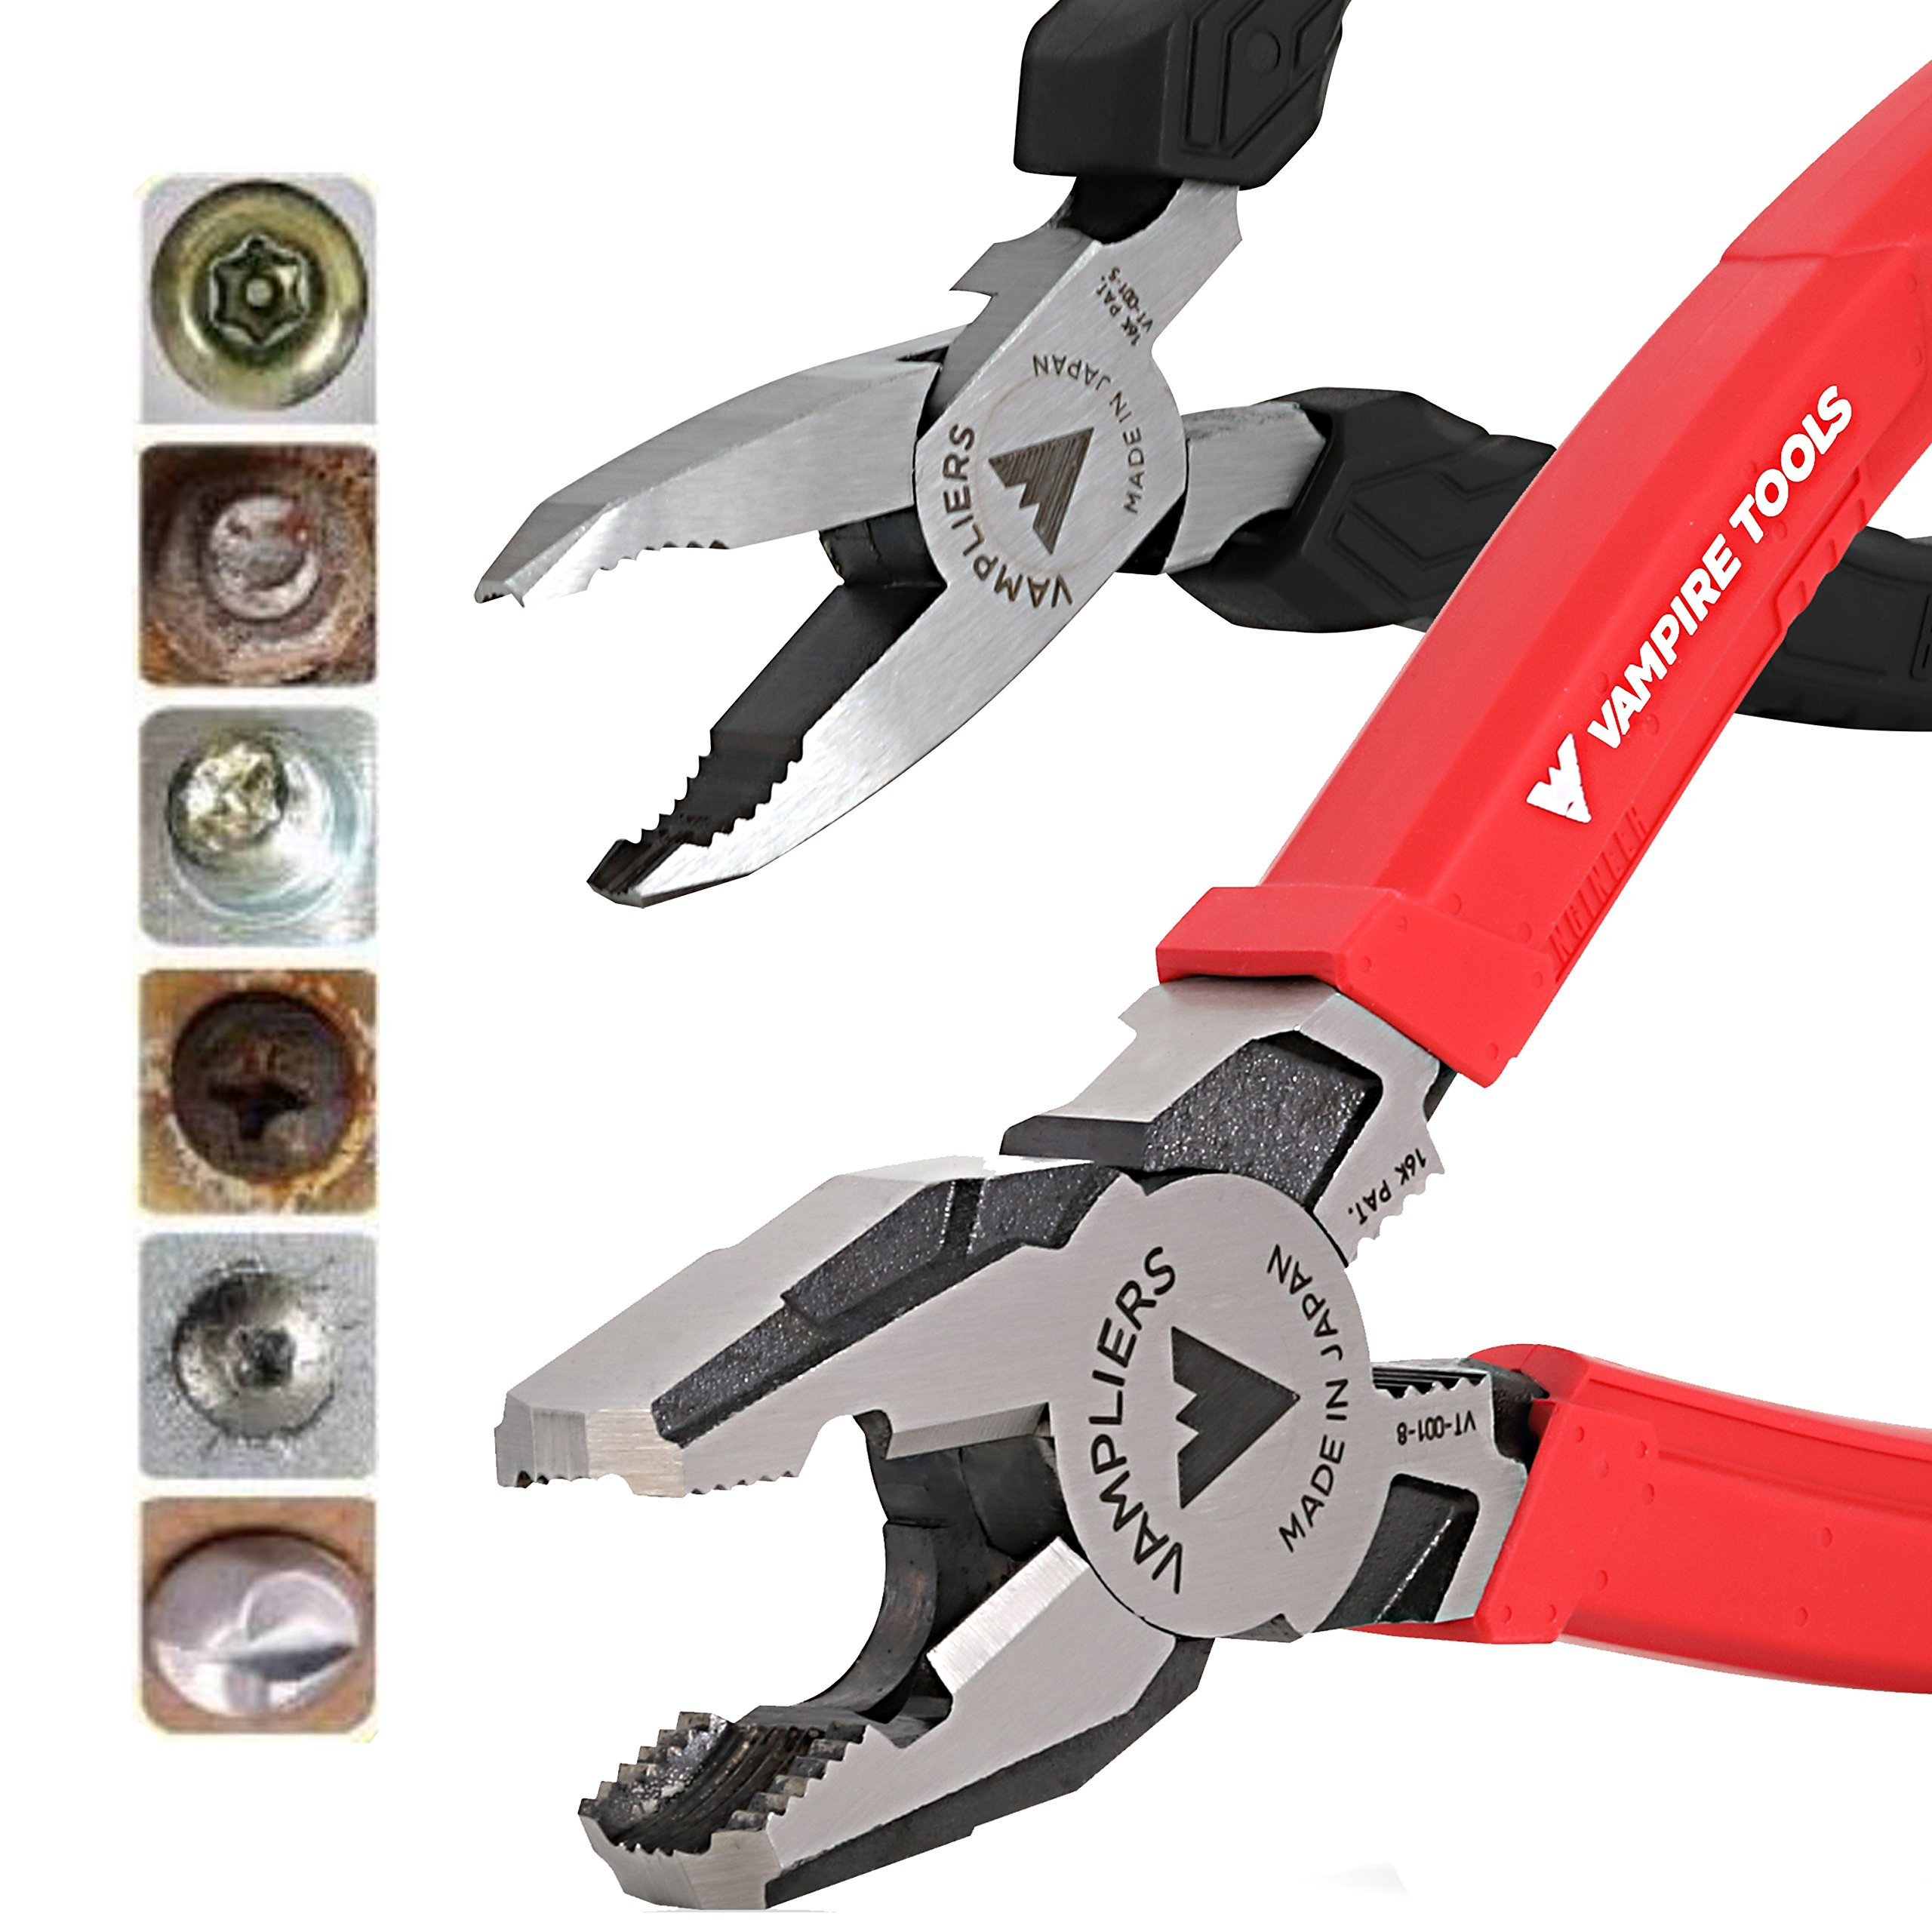 VamPLIERS World's Best Pliers VT-001-S2F Rusted/Damage/Security Screw Extraction Pliers Best Holiday Christmas Gift Ideal for Corporate/Friends and Family Gifts that last beyond Christmas season! by VAMPIRE PROFESSIONAL TOOLS